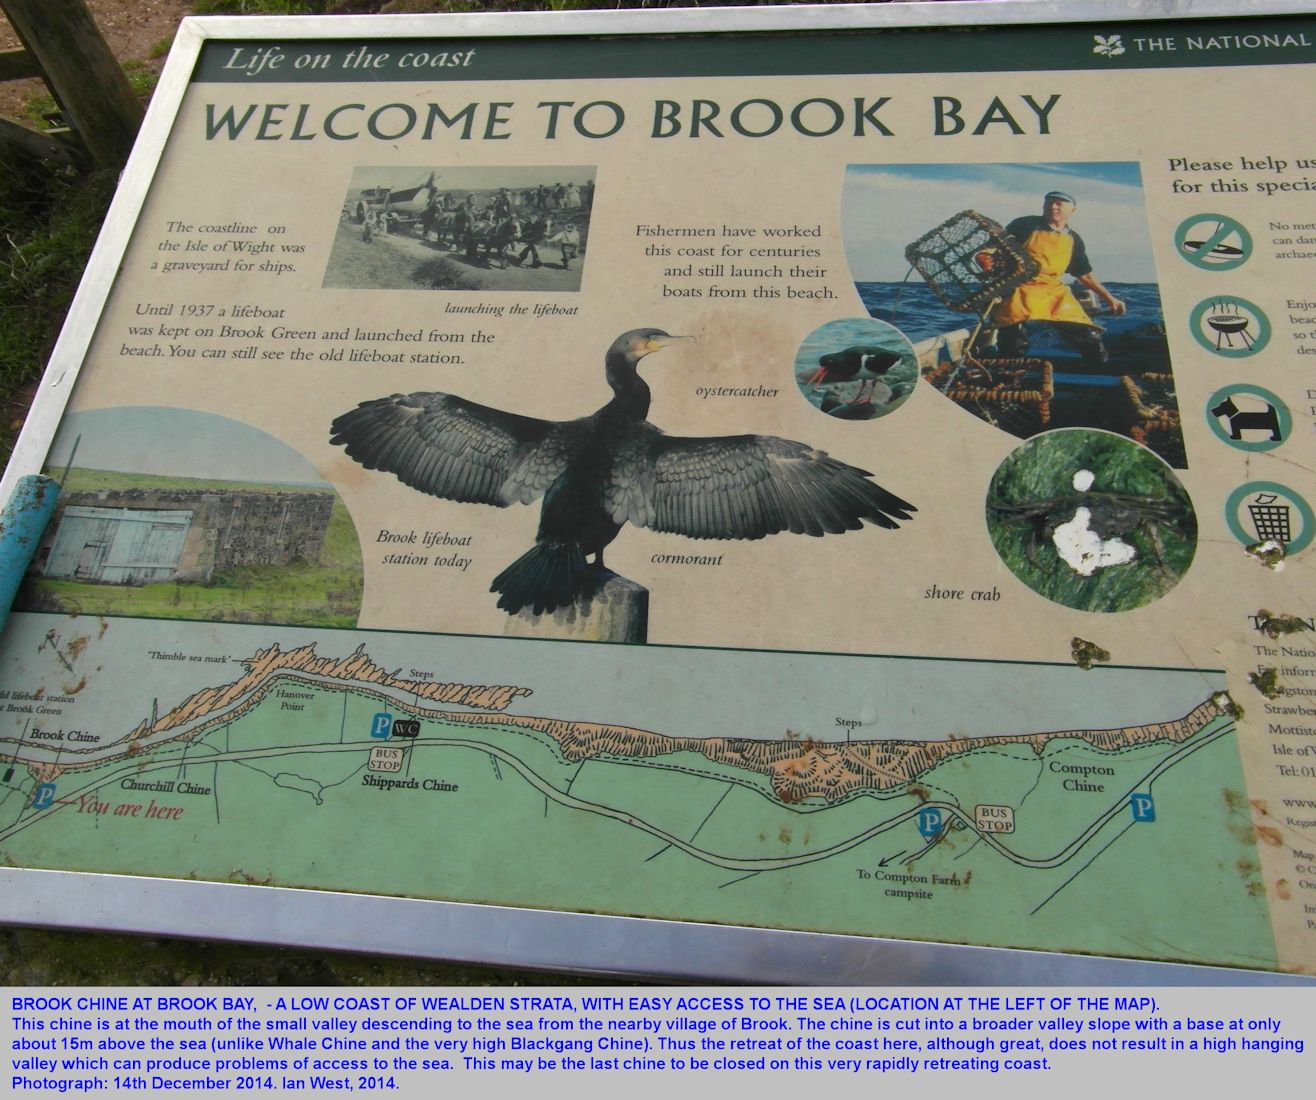 A location map on an information board at Brook Chine, Isle of Wight, 14th December 2014